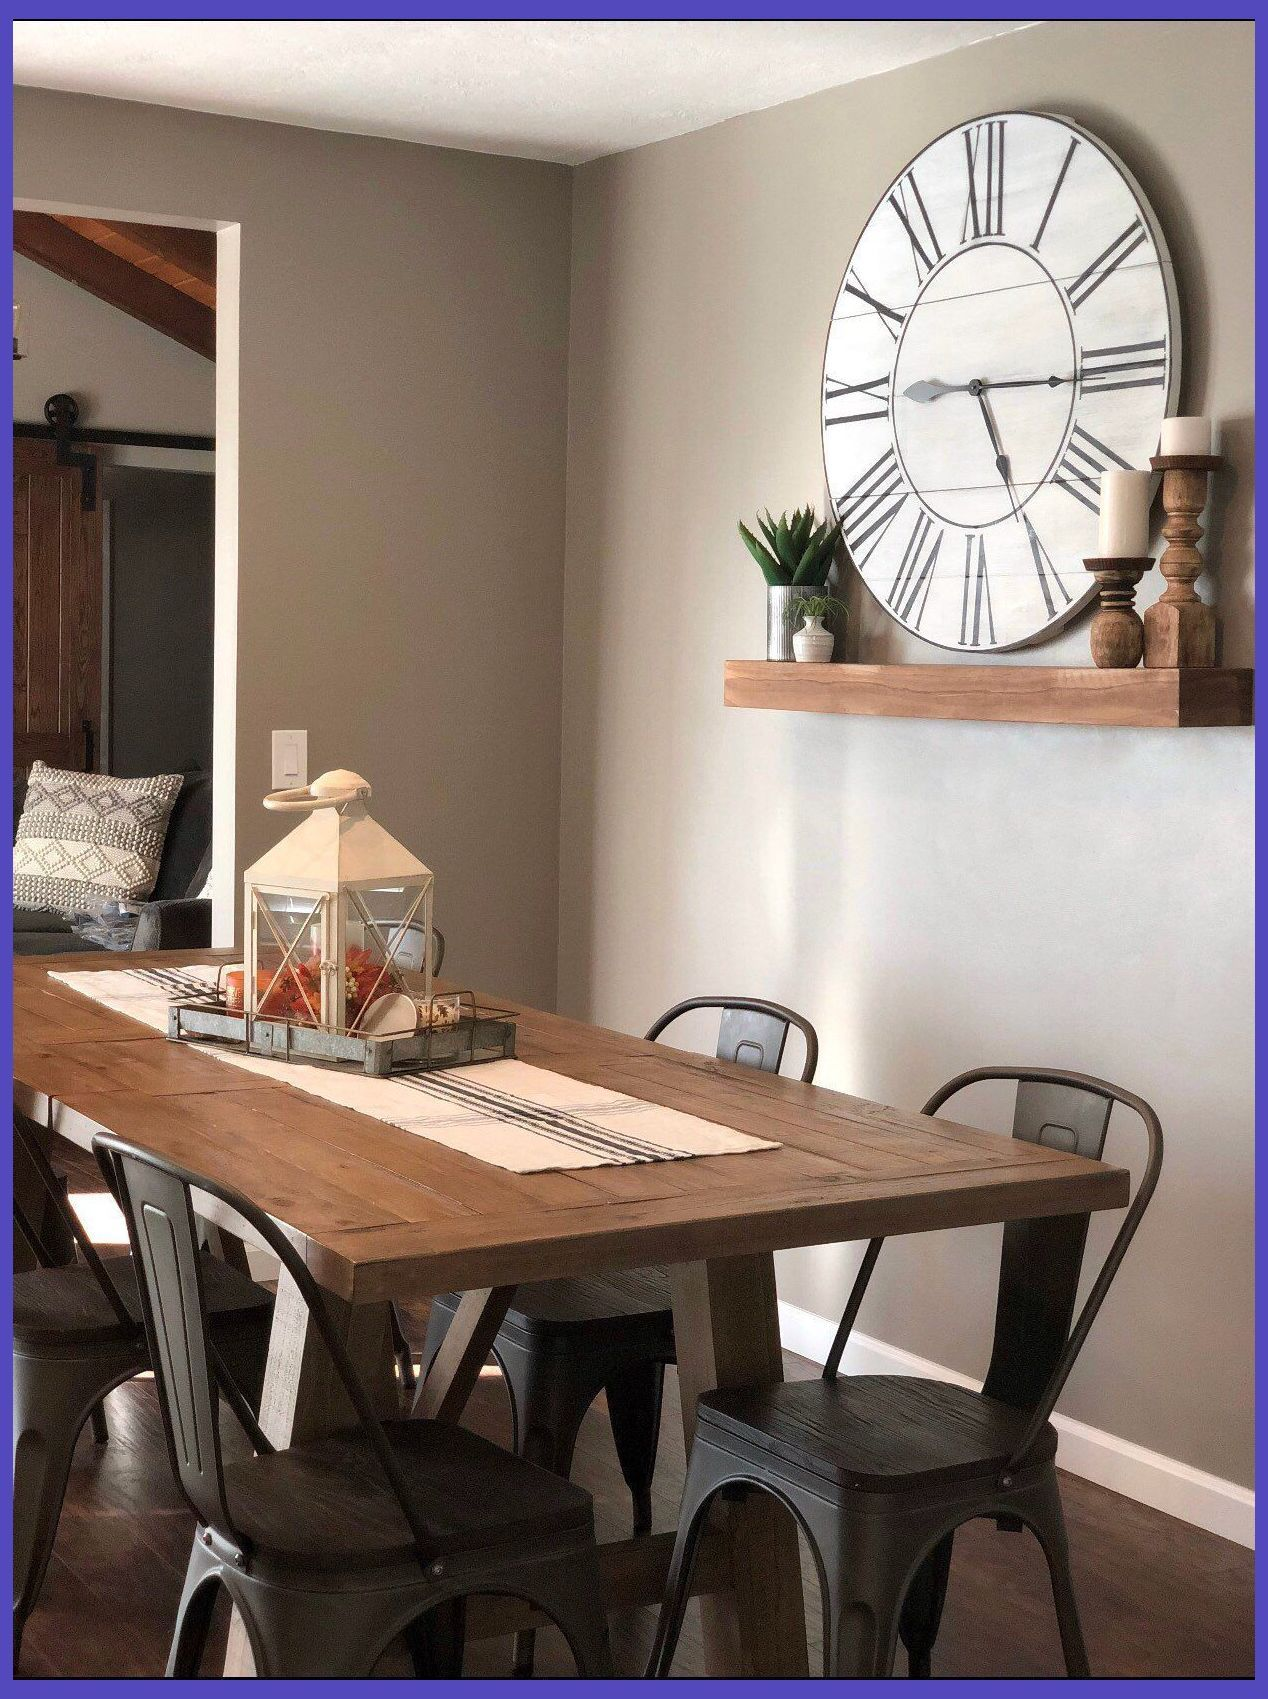 Tips For Decorating Your Dining Room Room Decor Ideas Dining Room Small Dining Room Clock Dining Room Wall Decor